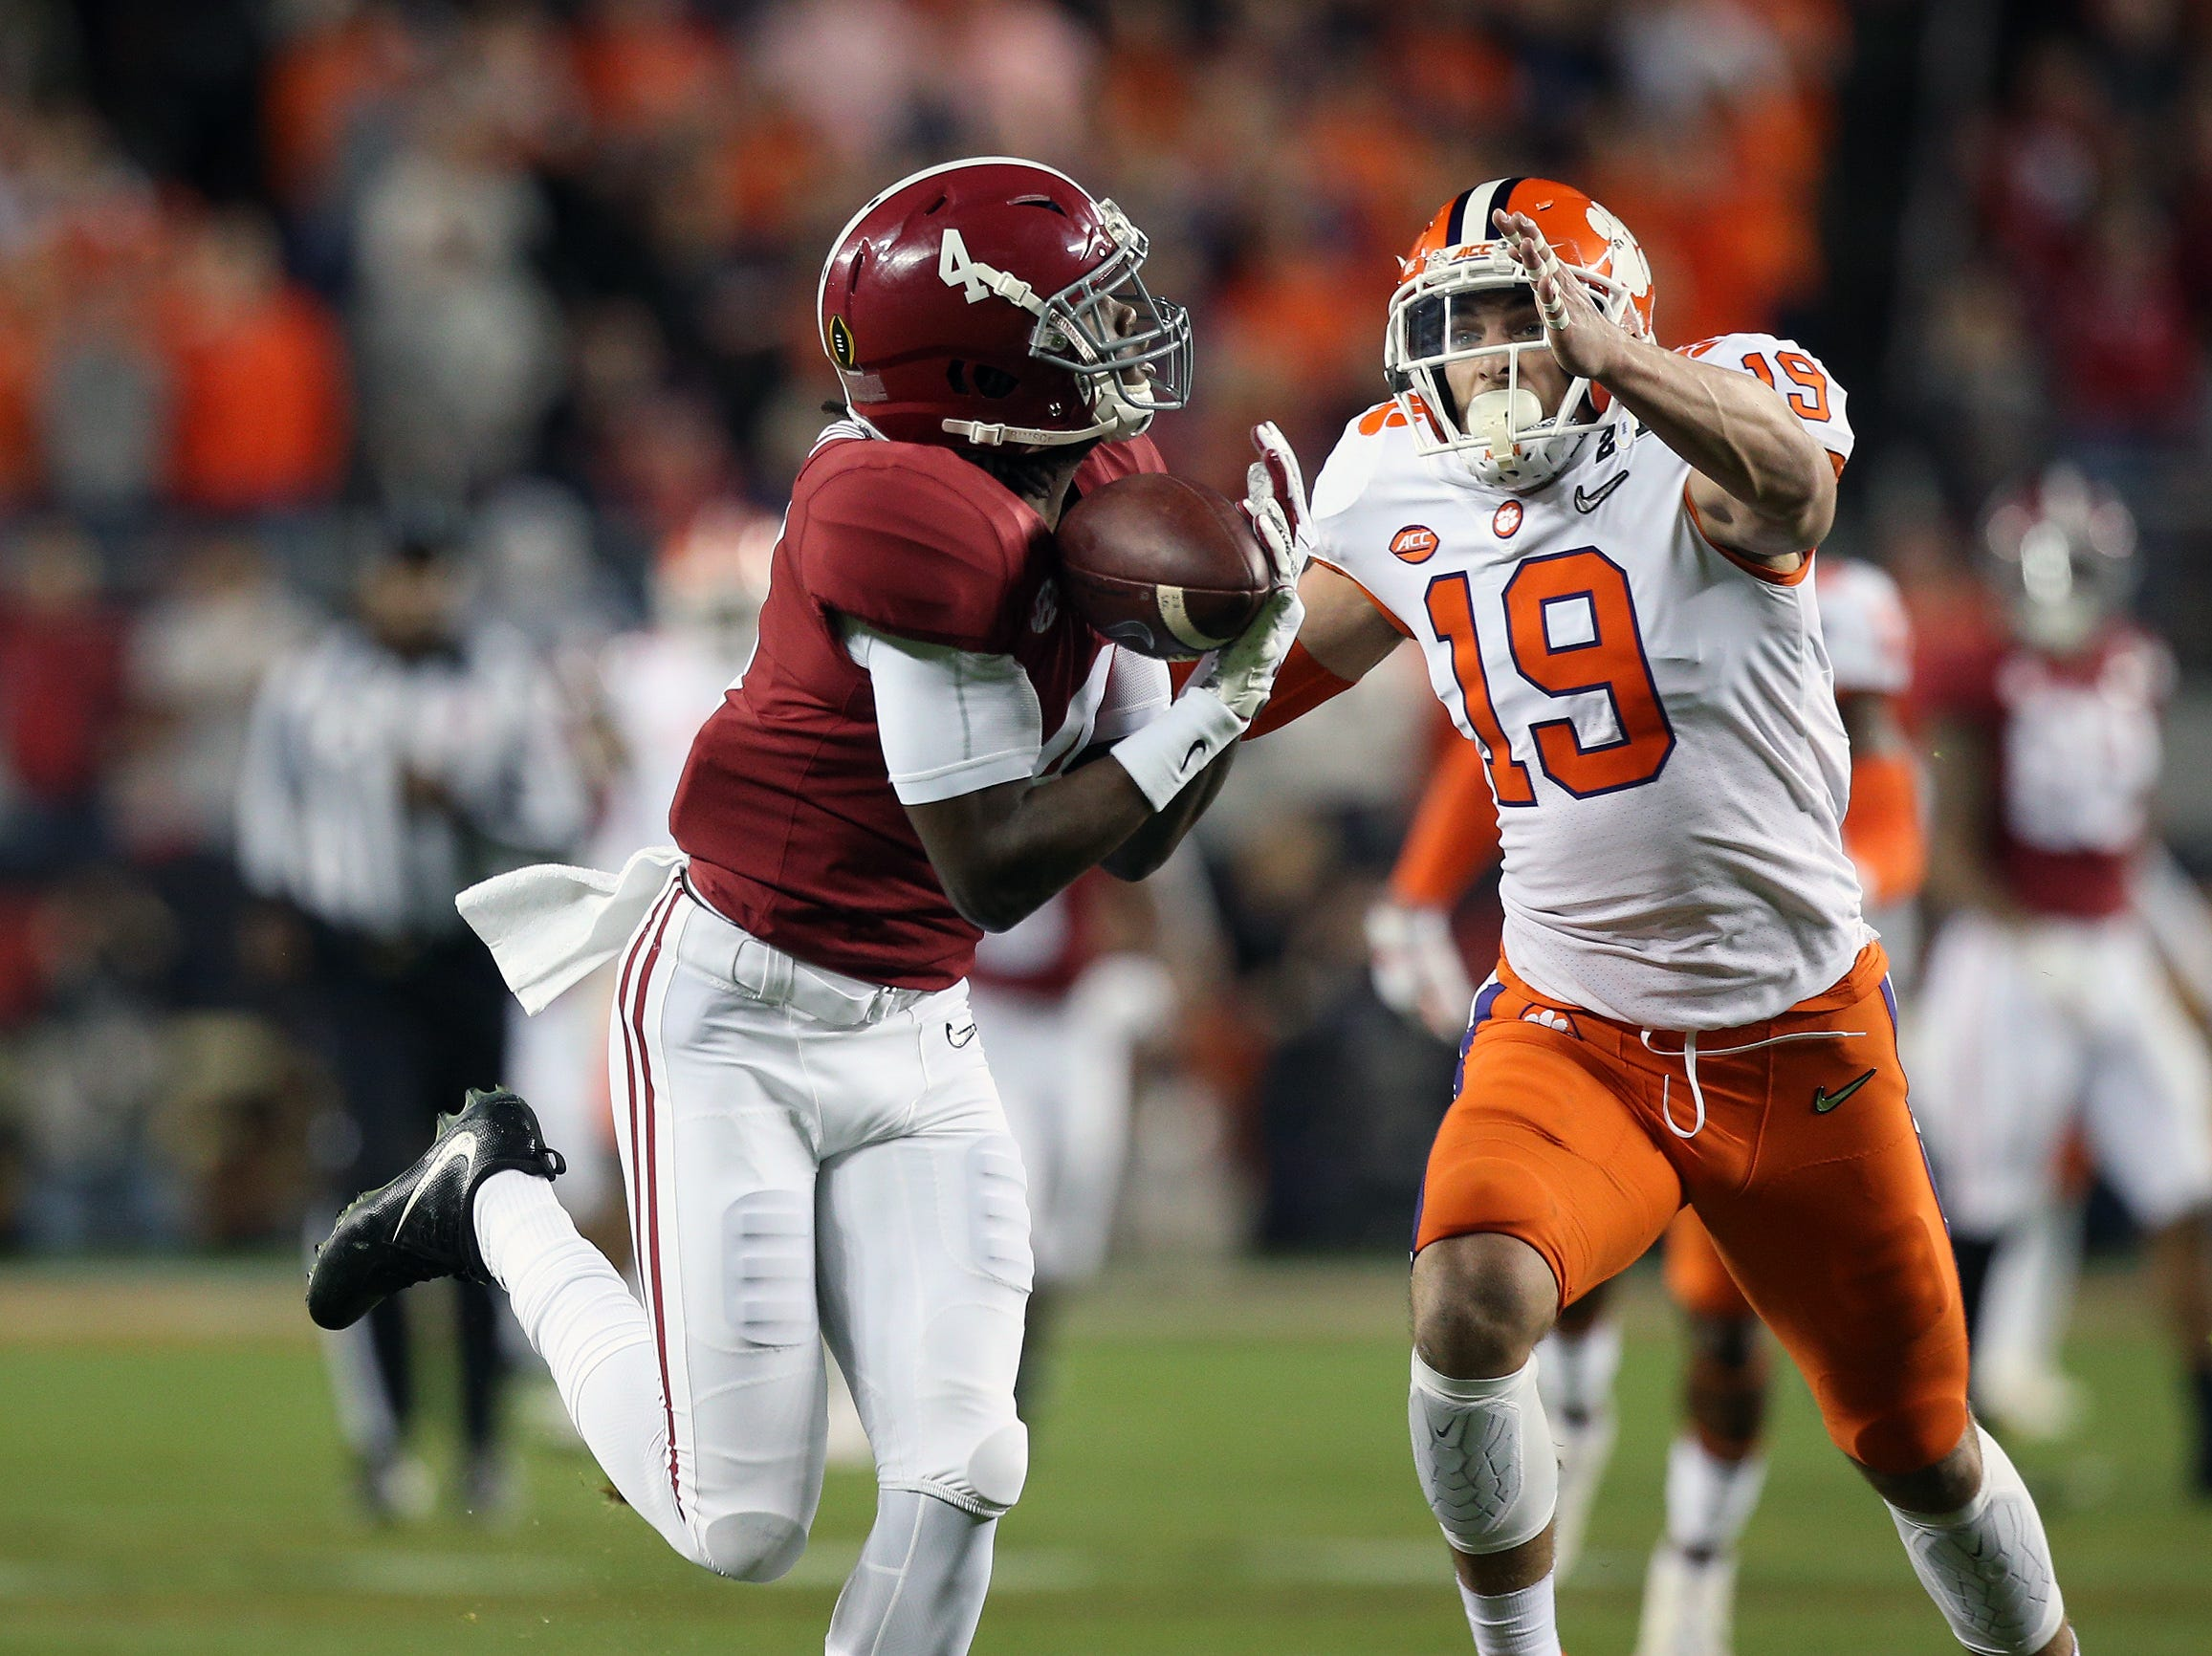 Jan 7, 2019; Santa Clara, CA, USA; Alabama Crimson Tide wide receiver Jerry Jeudy (4) makes a catch against Clemson Tigers safety Tanner Muse (19) in the first quarter during the 2019 College Football Playoff Championship game at Levi's Stadium. Mandatory Credit: Cary Edmondson-USA TODAY Sports